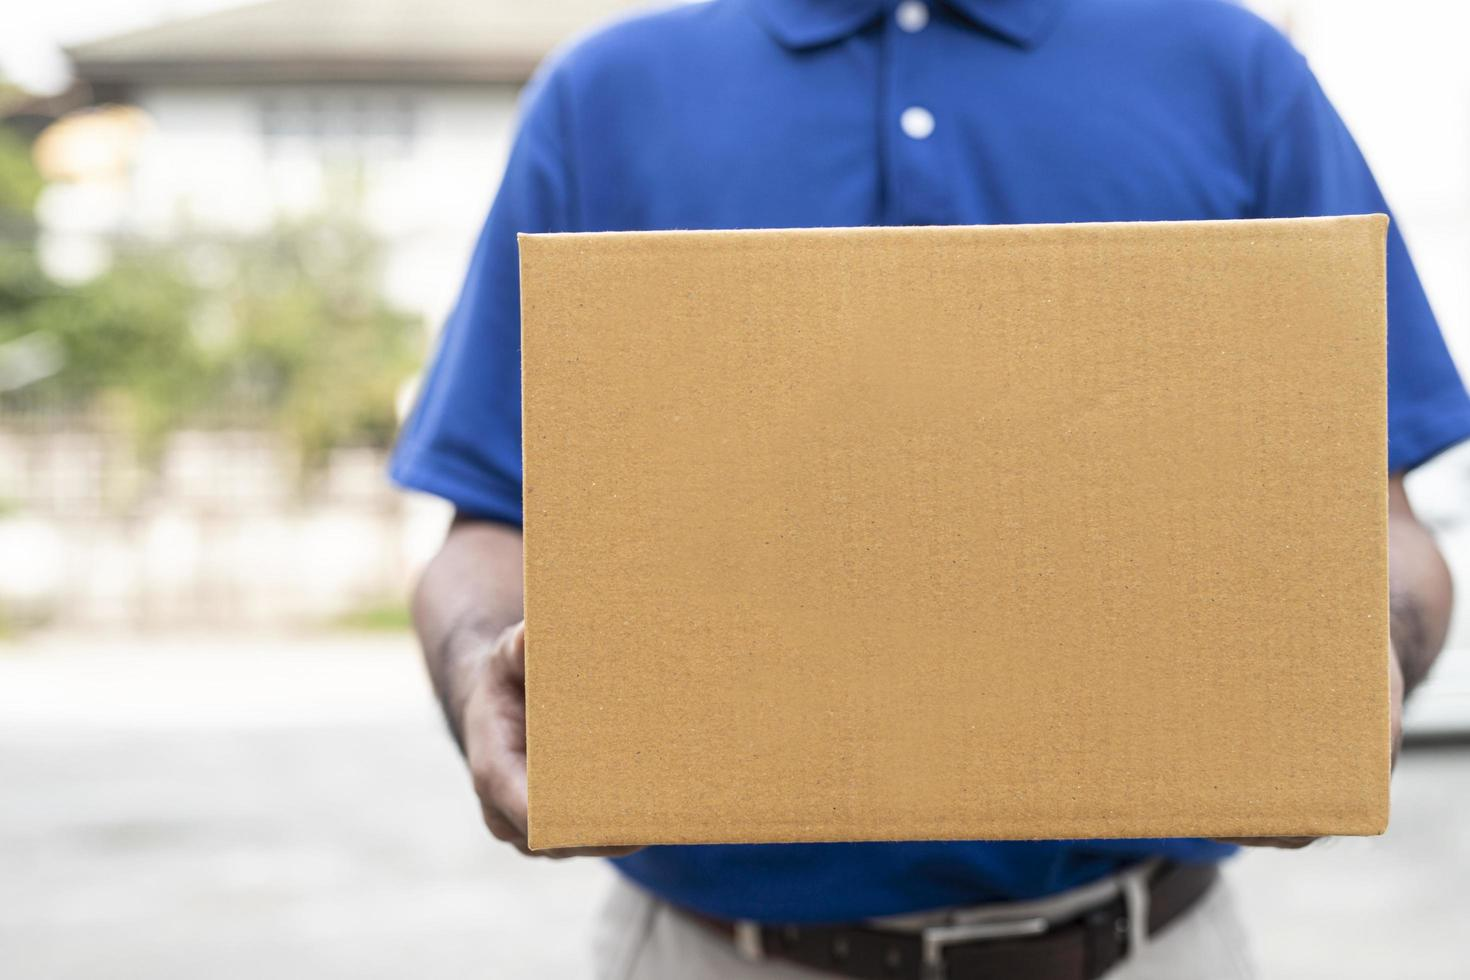 Delivery man holding box photo